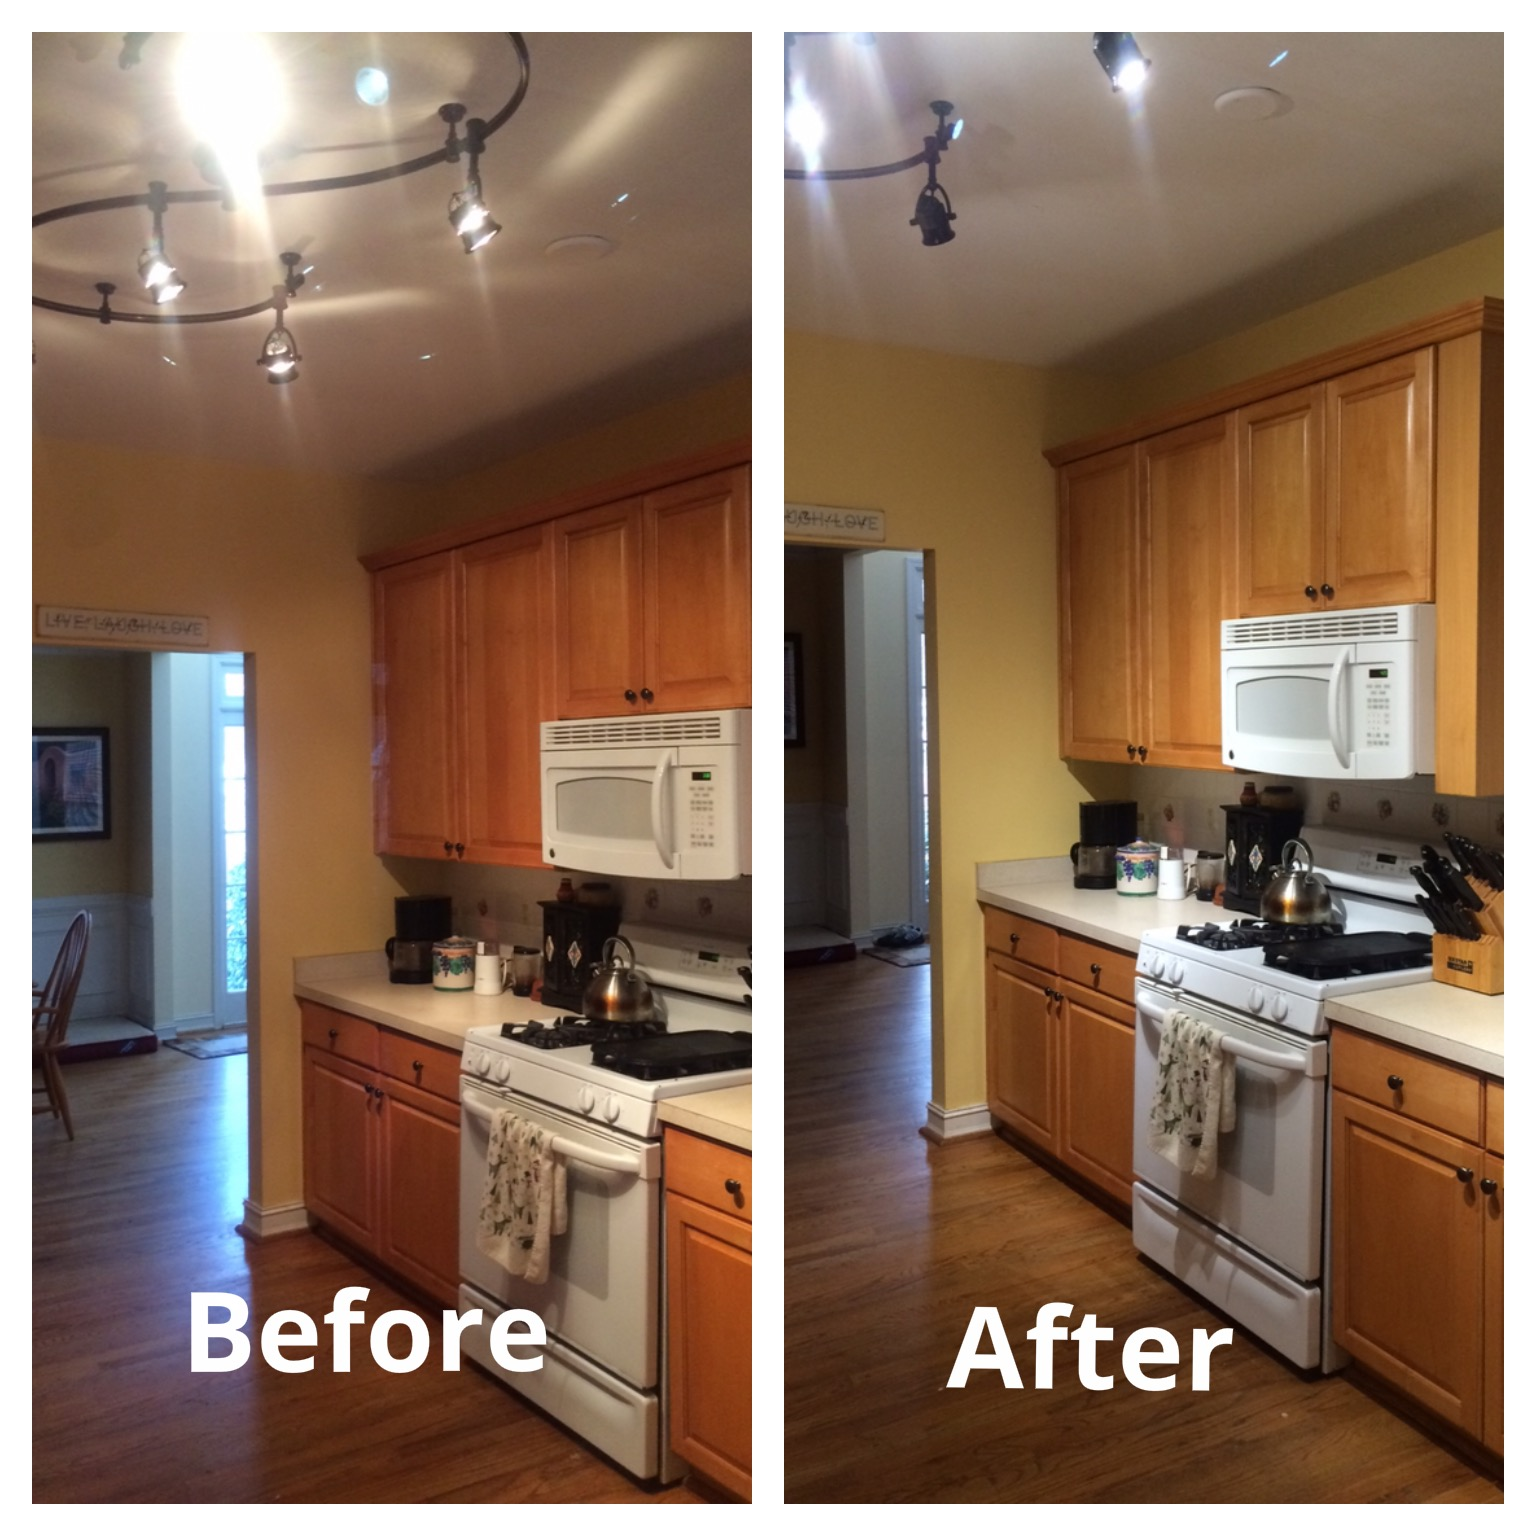 Kitchen Updates Before And After: LED Lights Replace Halogens In Kitchen Update